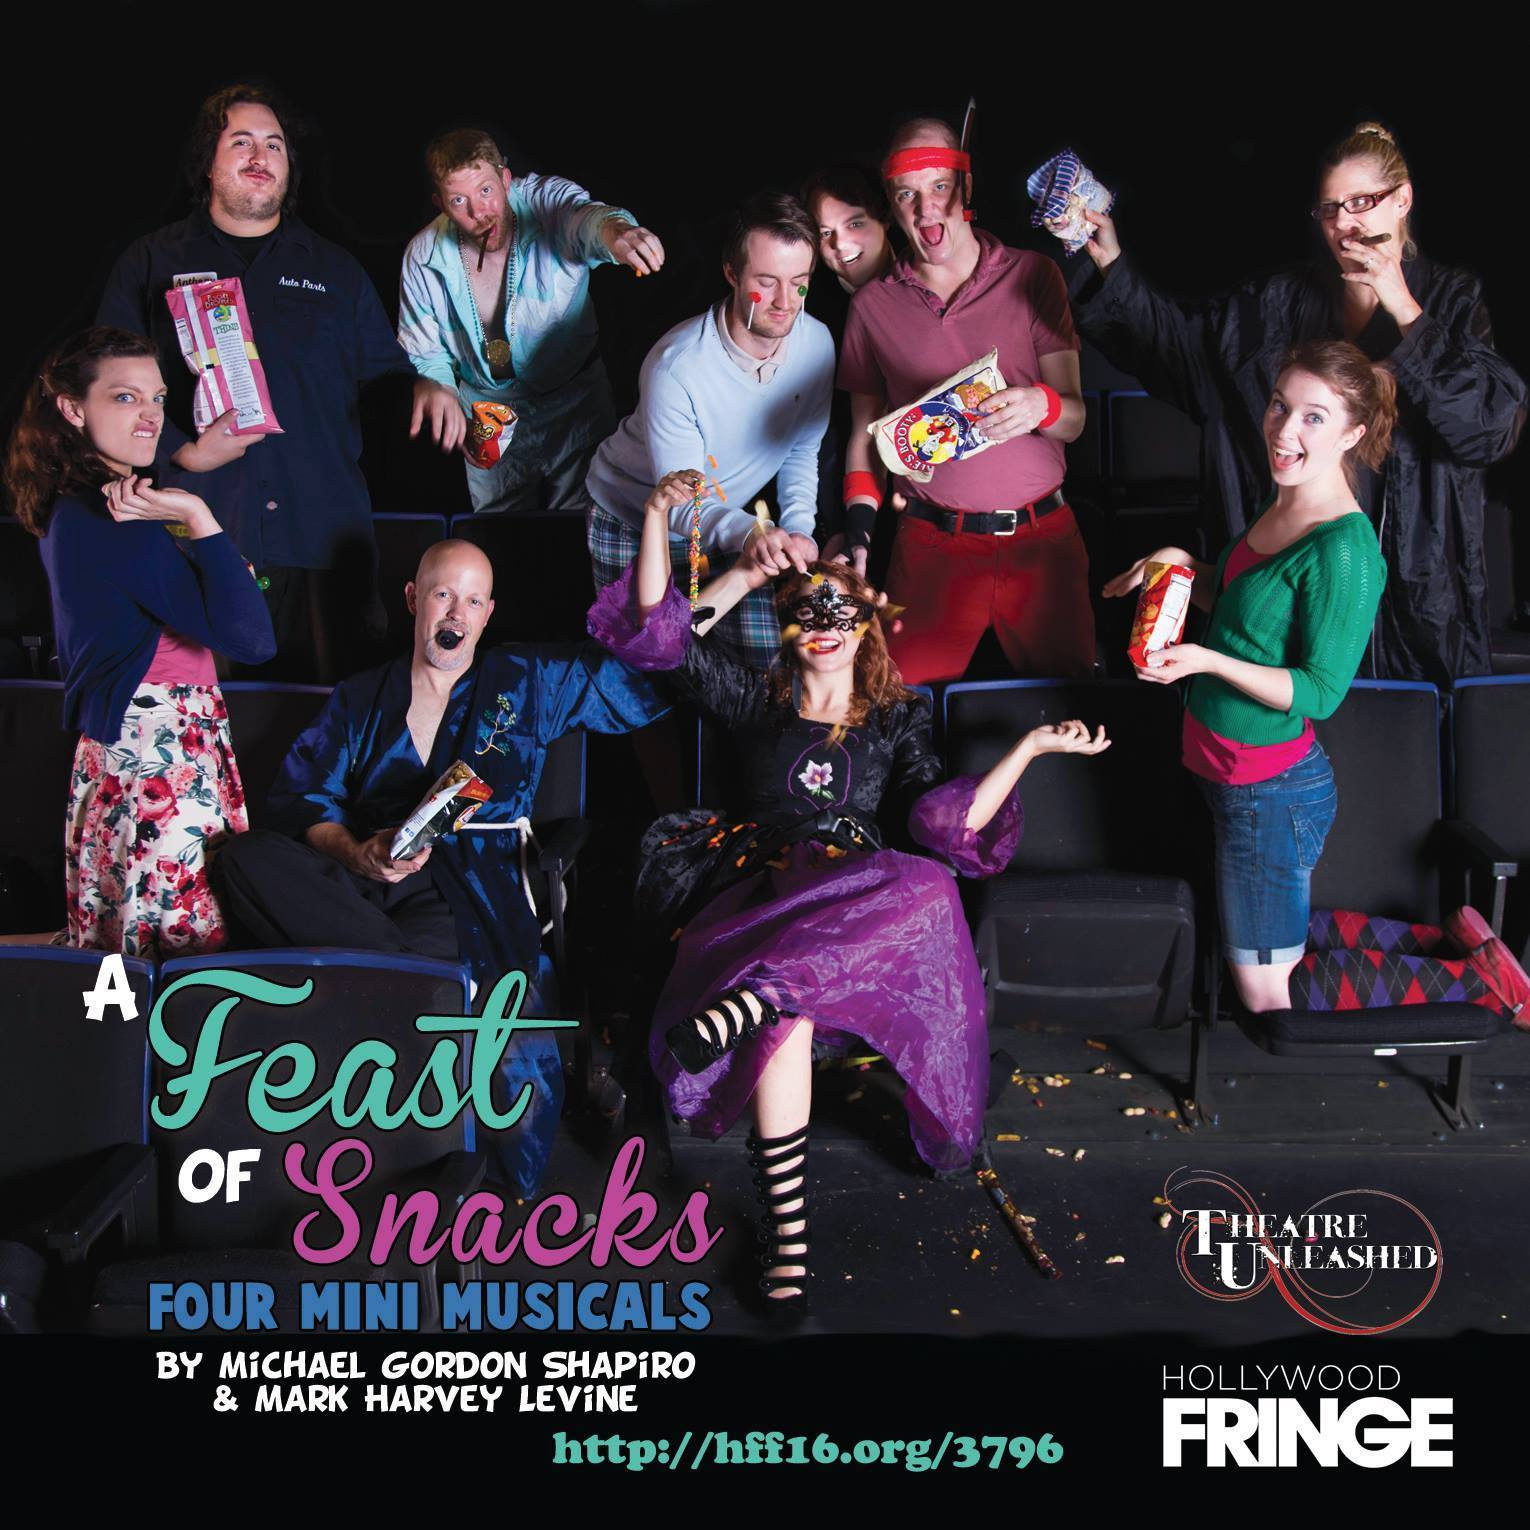 A Feast of Snacks, Hollywood Fringe